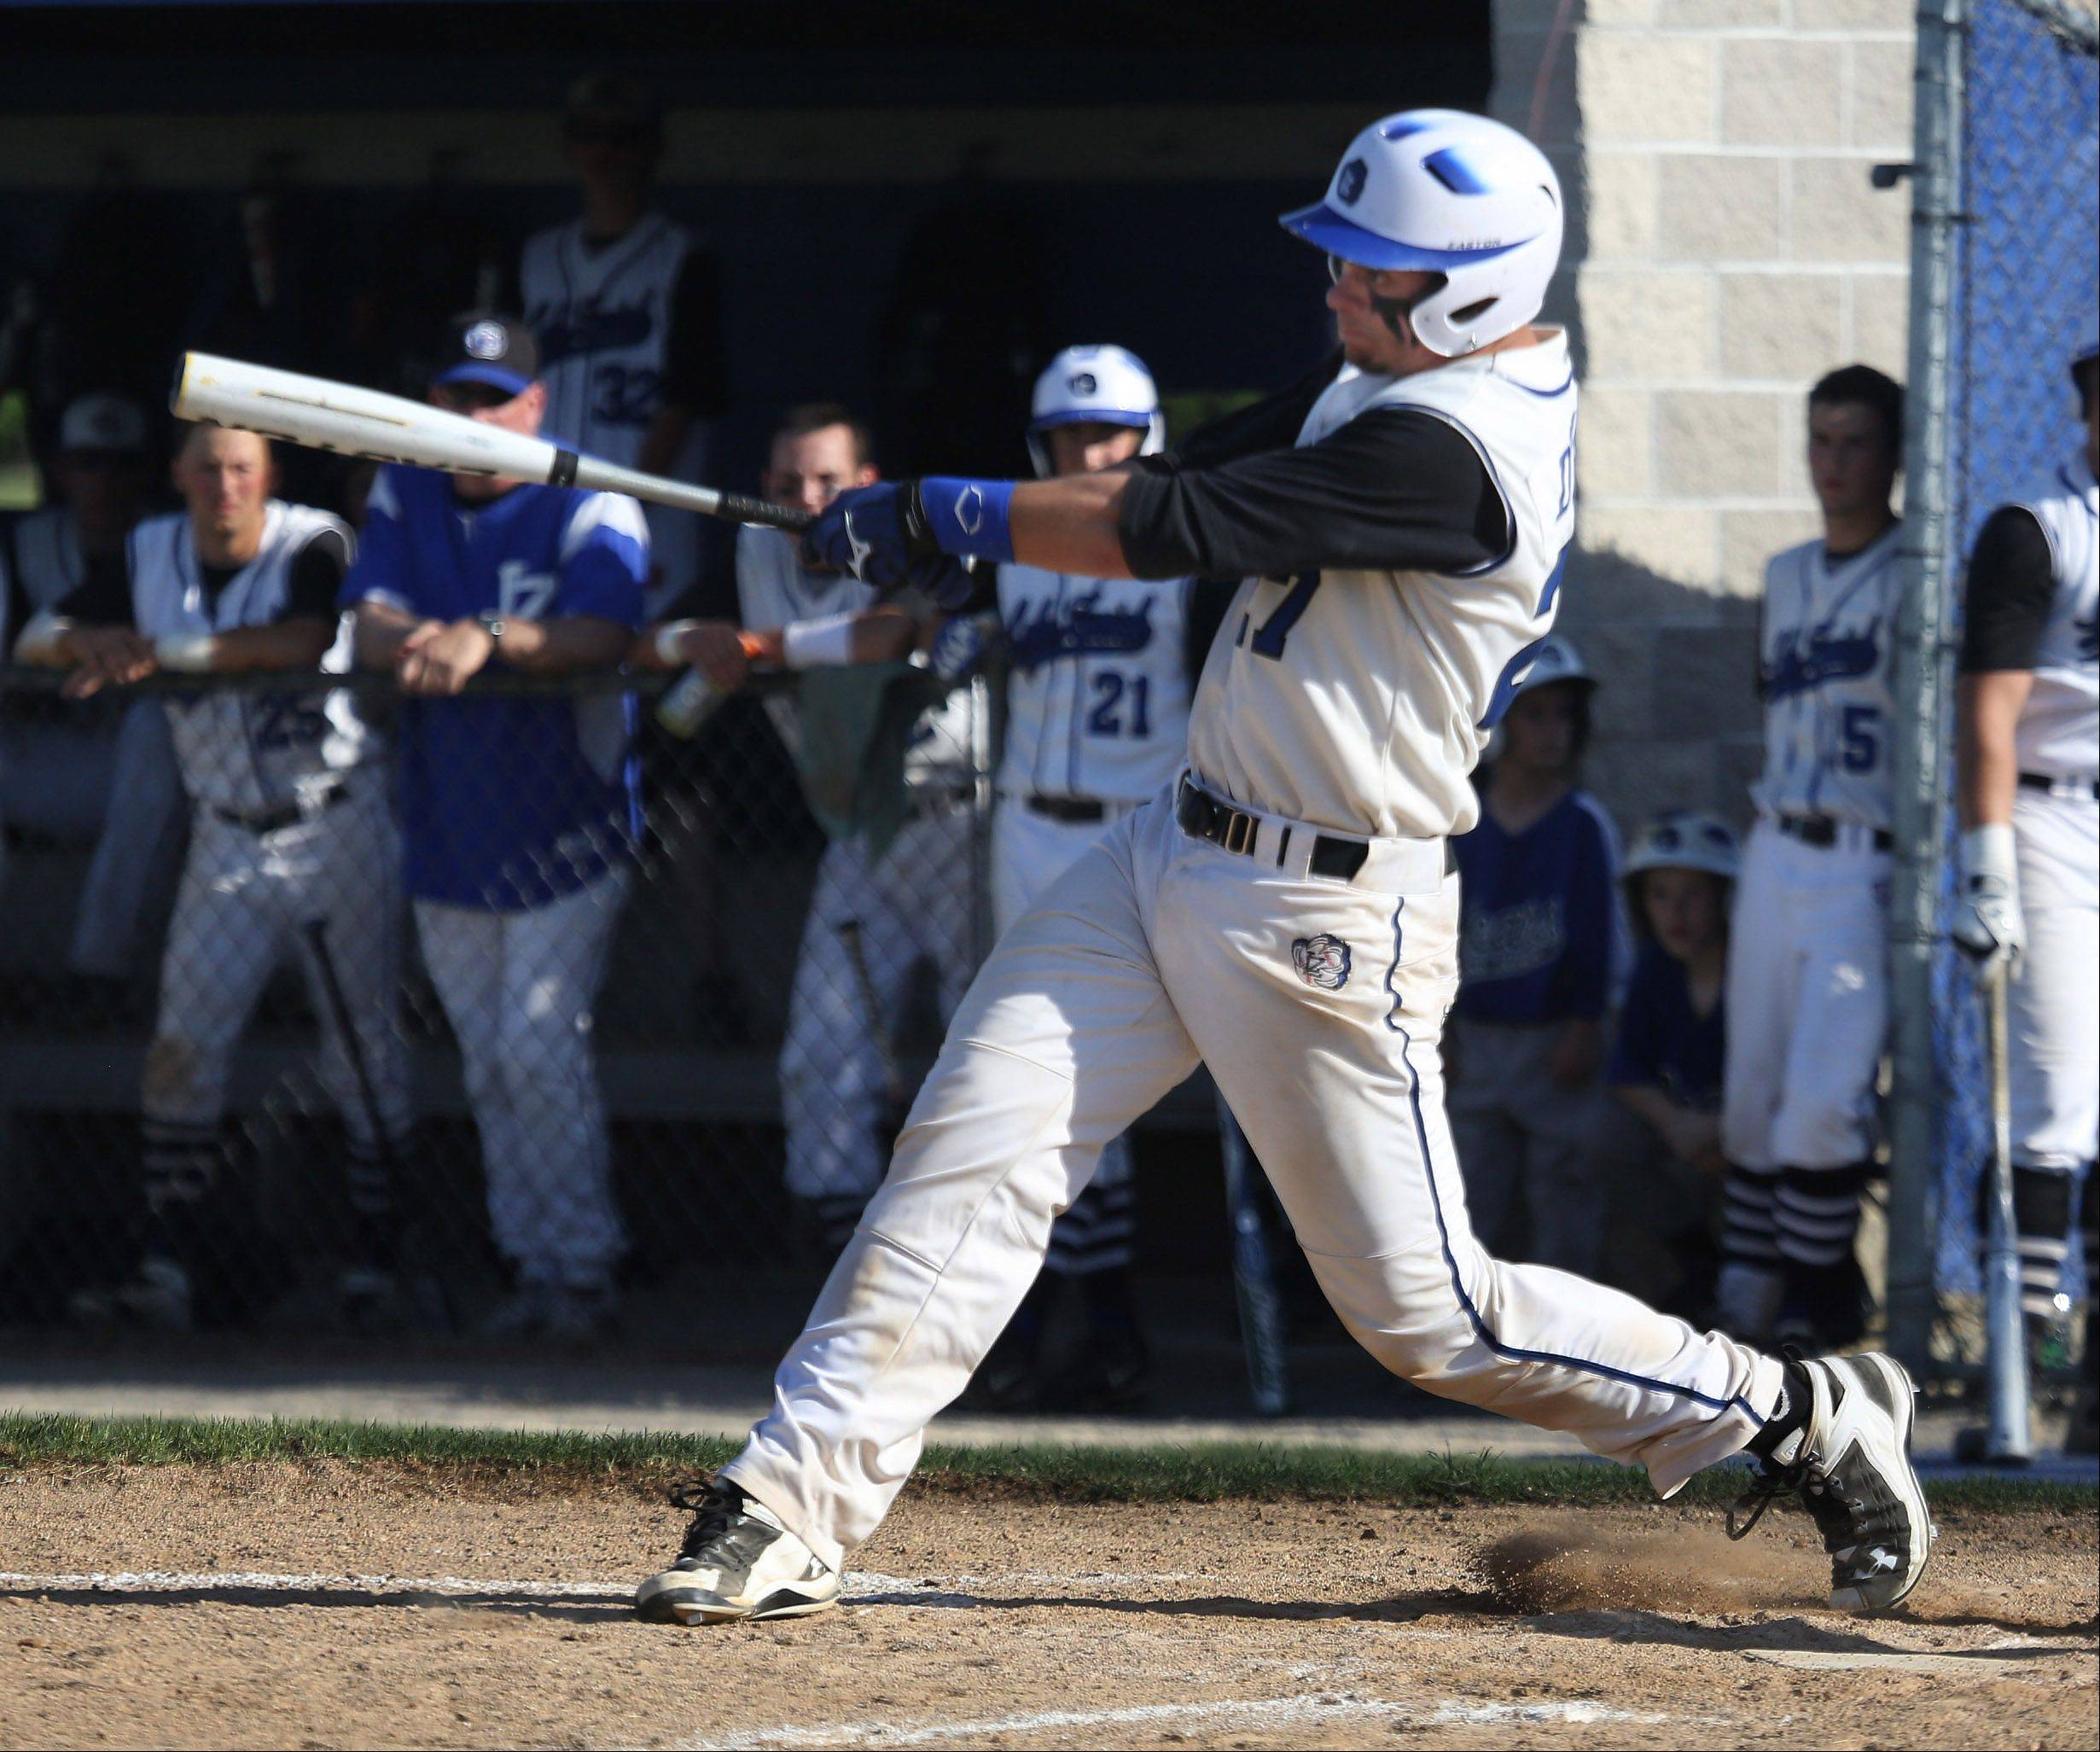 Gilbert R. Boucher II/gboucher@dailyherald.com ¬ Lake Zurich hitter Anthony Drago gets a hit during the Class 4A regional play-in baseball game between Prospect and Lake Zurich Monday at Lake Zurich High School.